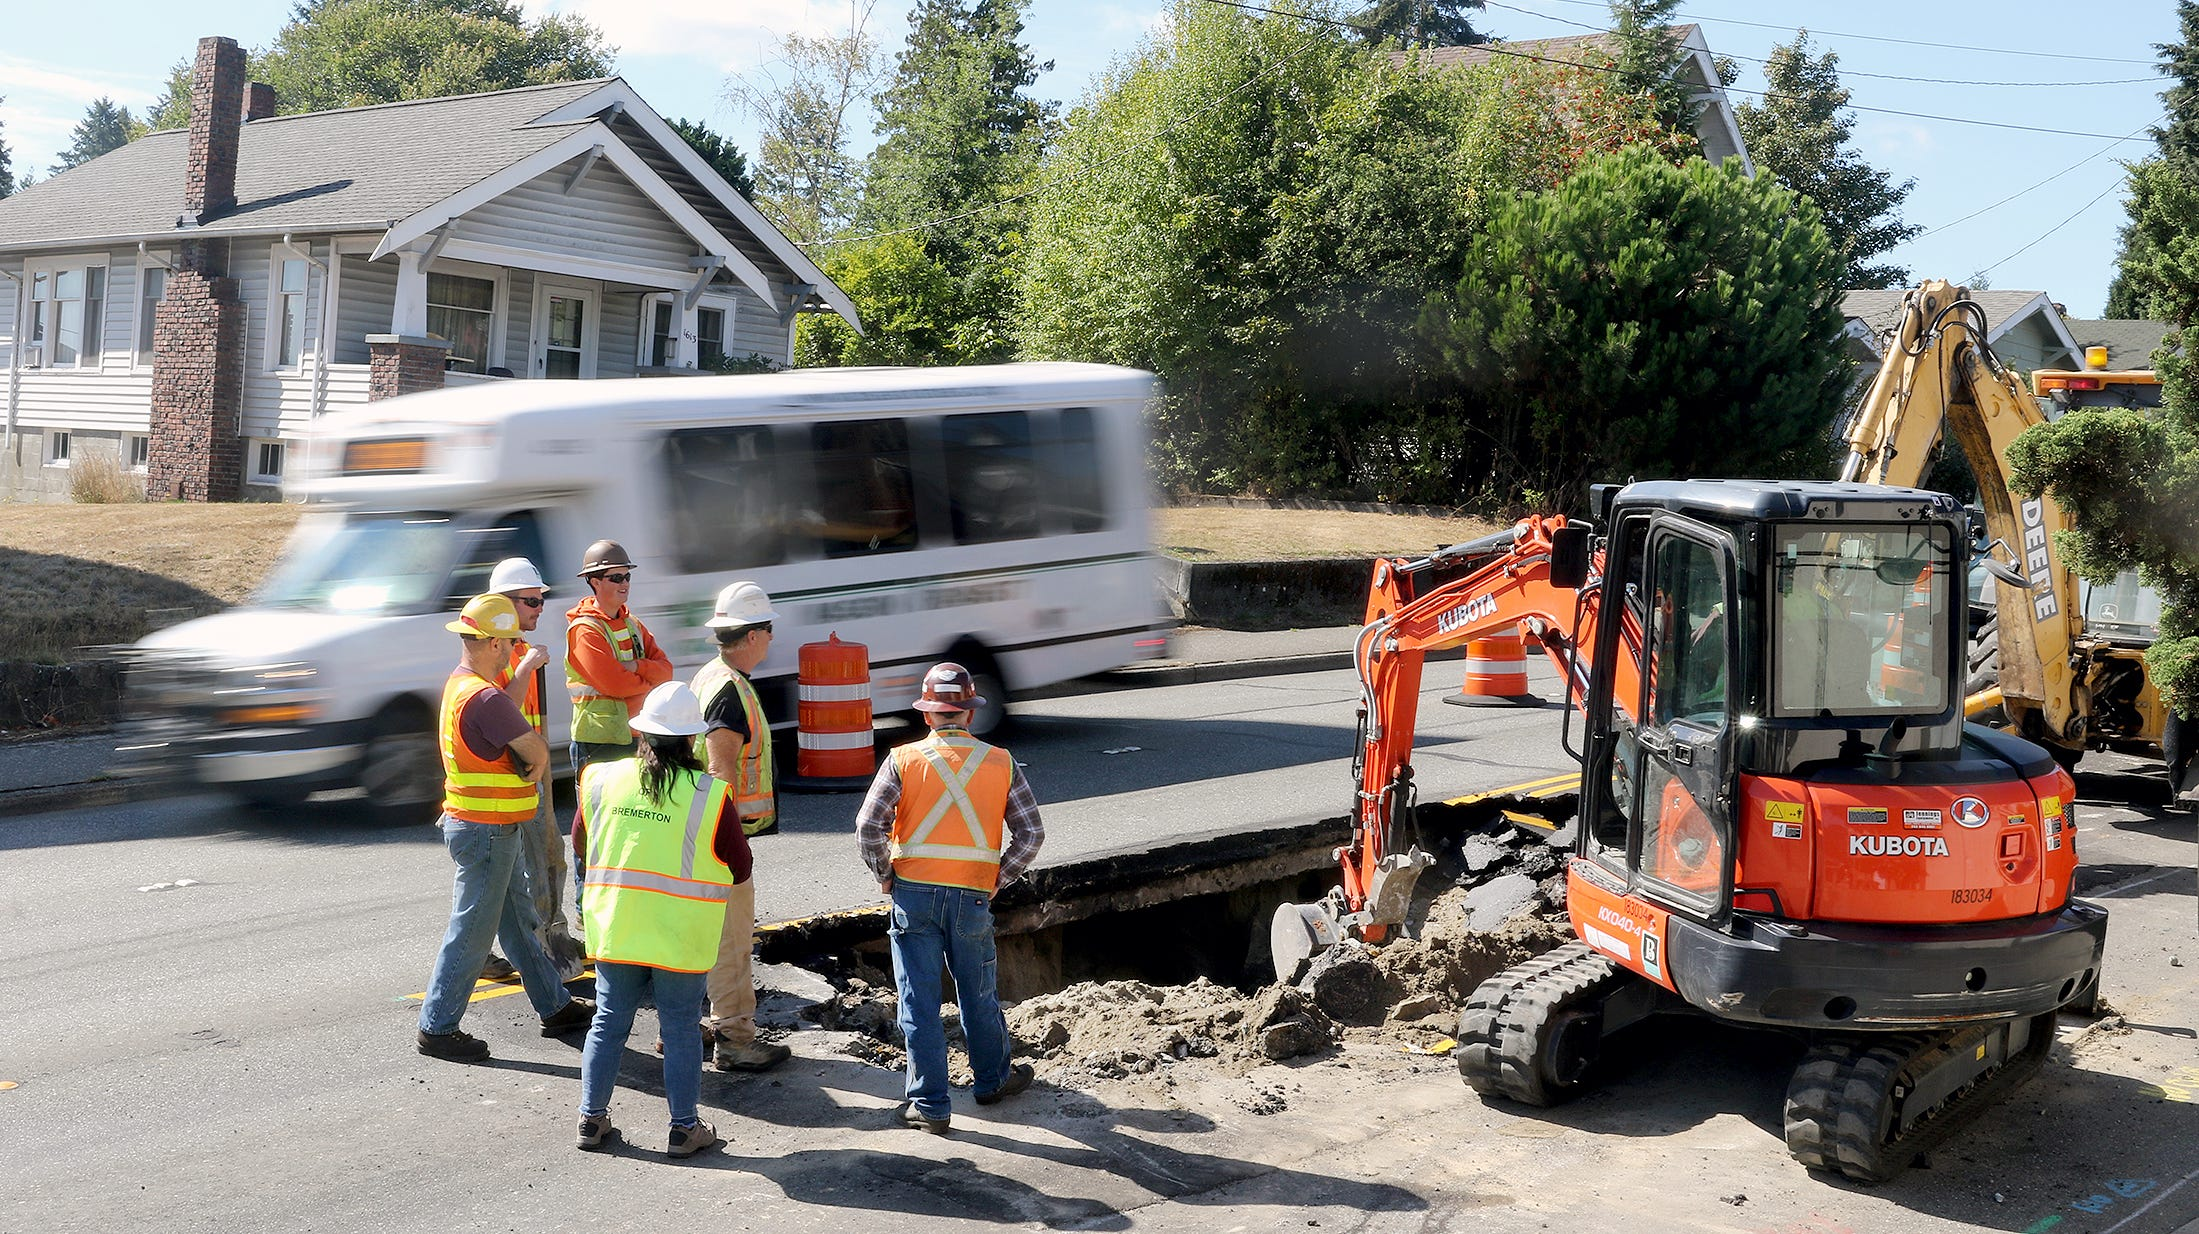 Crews are making an emergency repair at Burwell St. and Anoka Ave, a major thoroughfare in Bremerton due to a sinkhole.